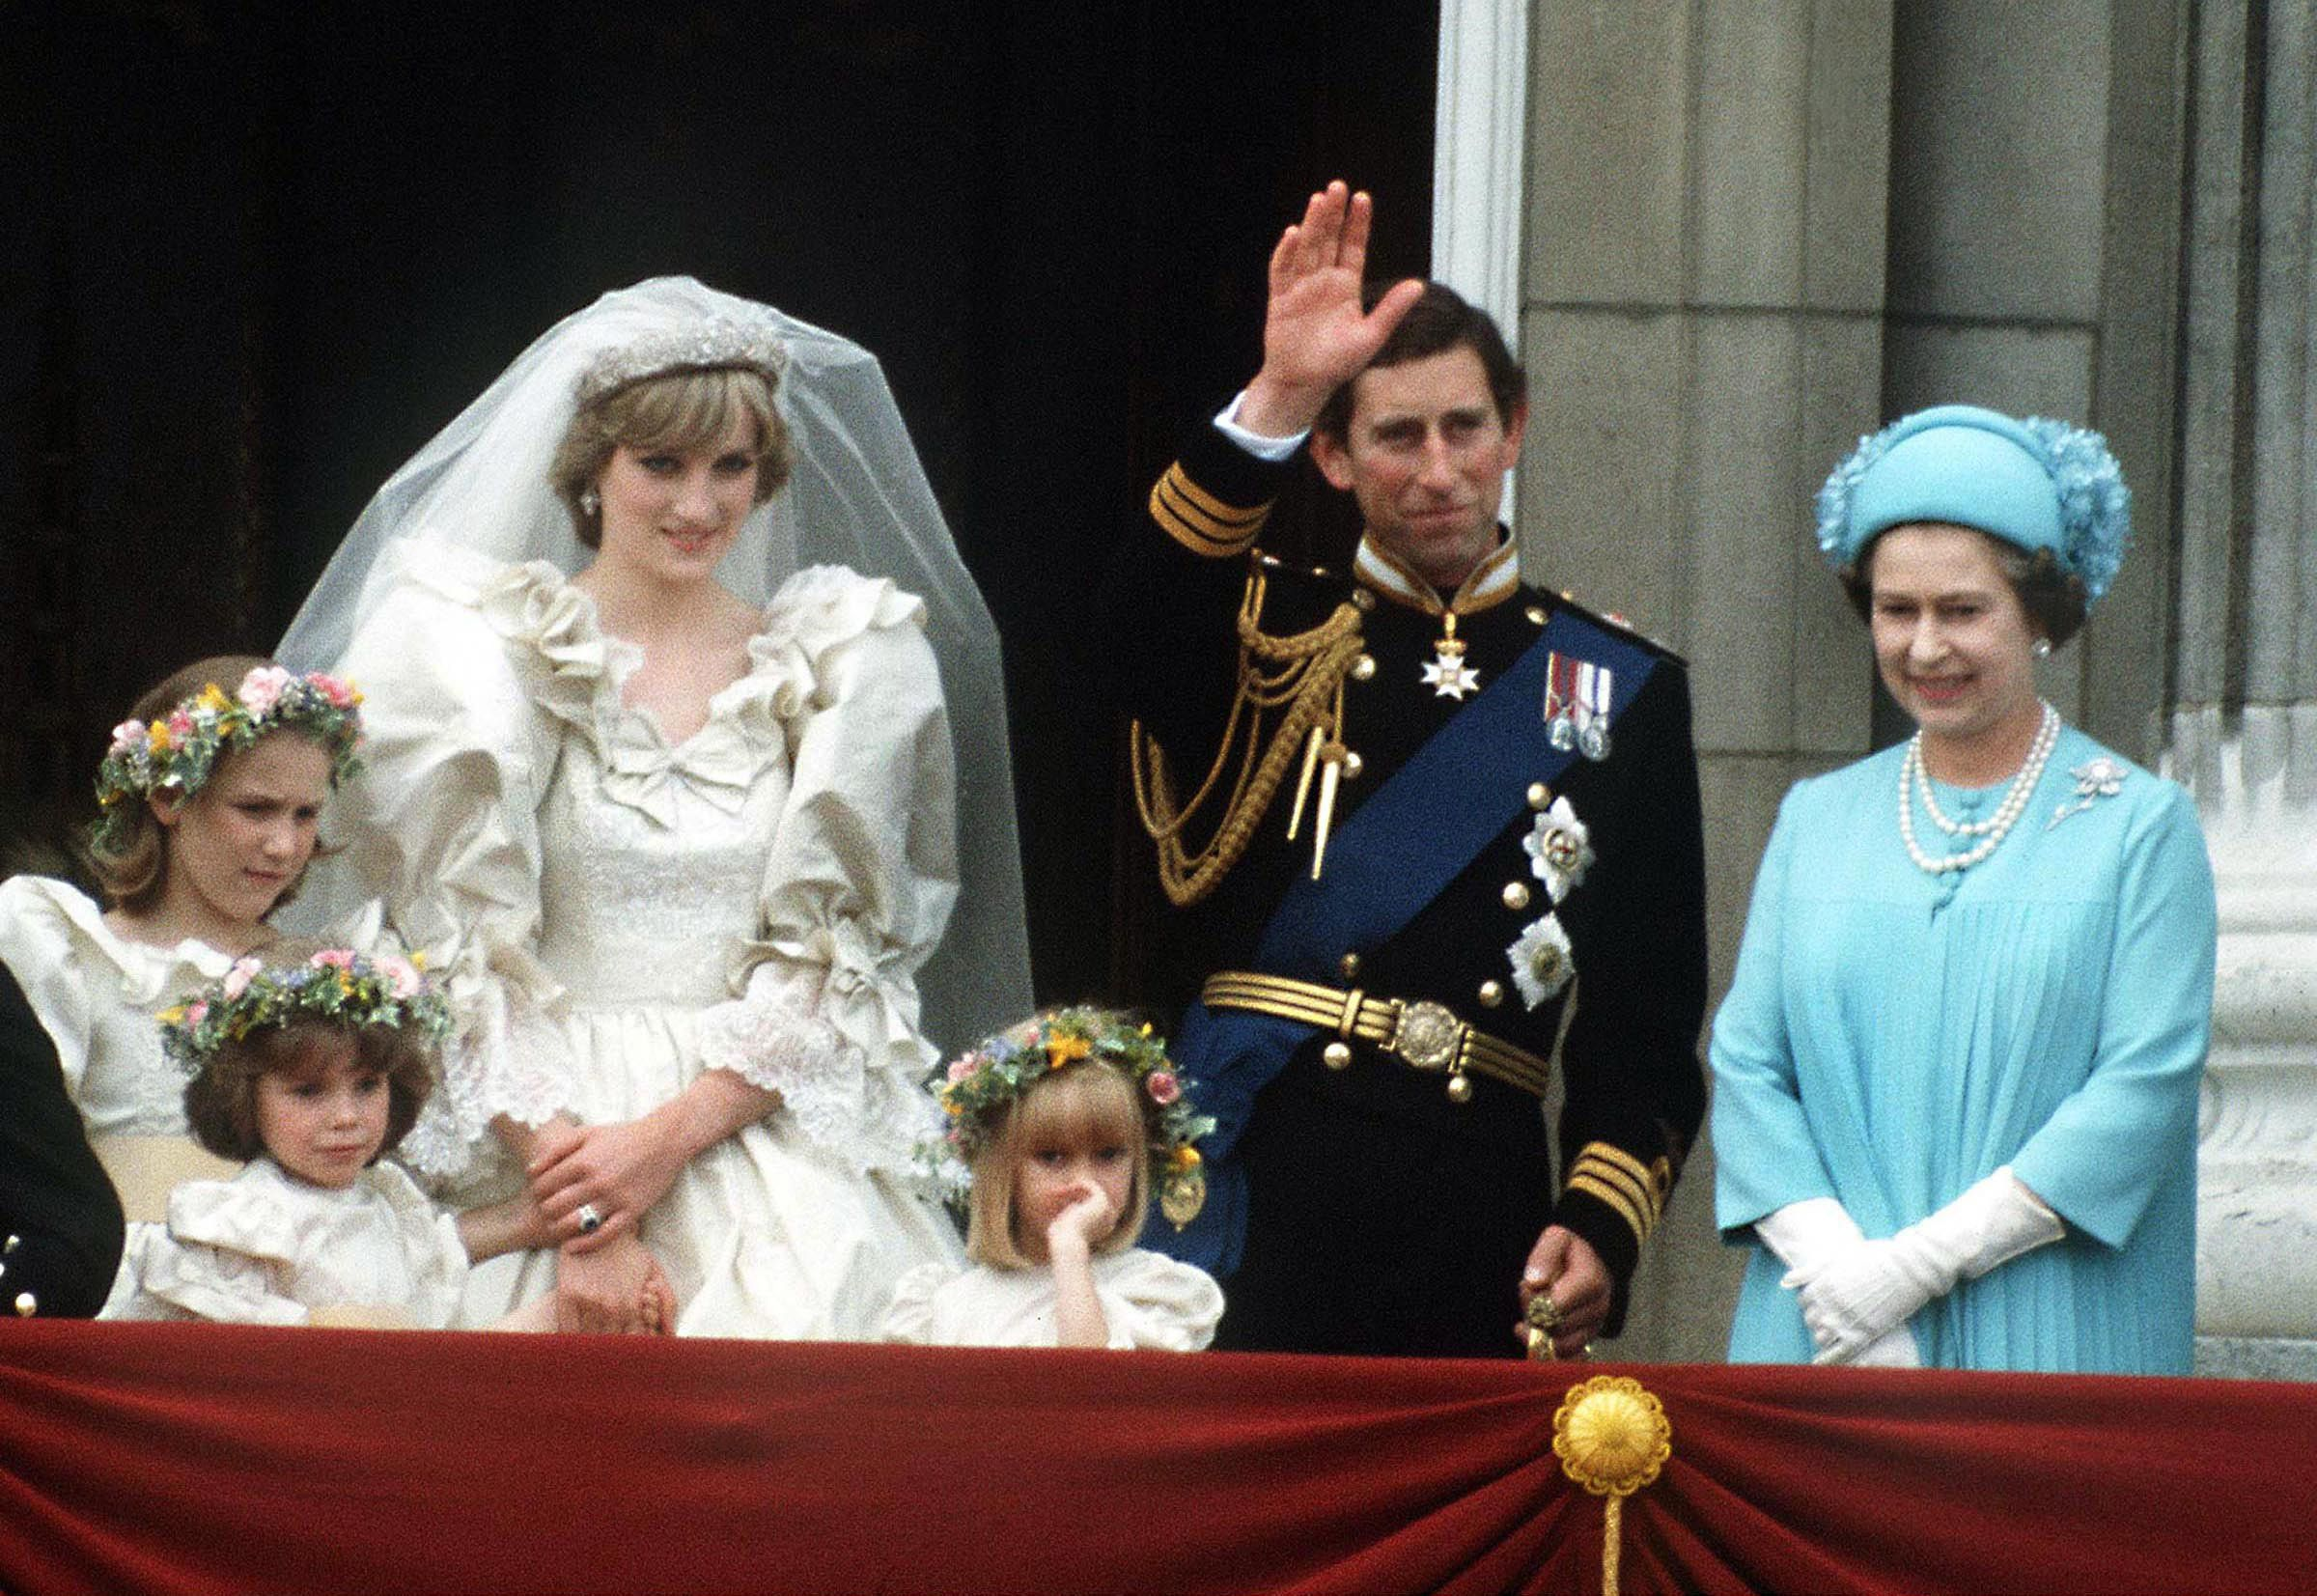 The original headline-grabbing royal wedding, Prince Charles's marriage to Diana Spencer in 1981 was an international event, watched by millions worldwide. For the occasion of the future King of England's nuptials, the queen sported a shift dress in Tiffany blue with white elbow-length gloves, pearls, and a matching hat.